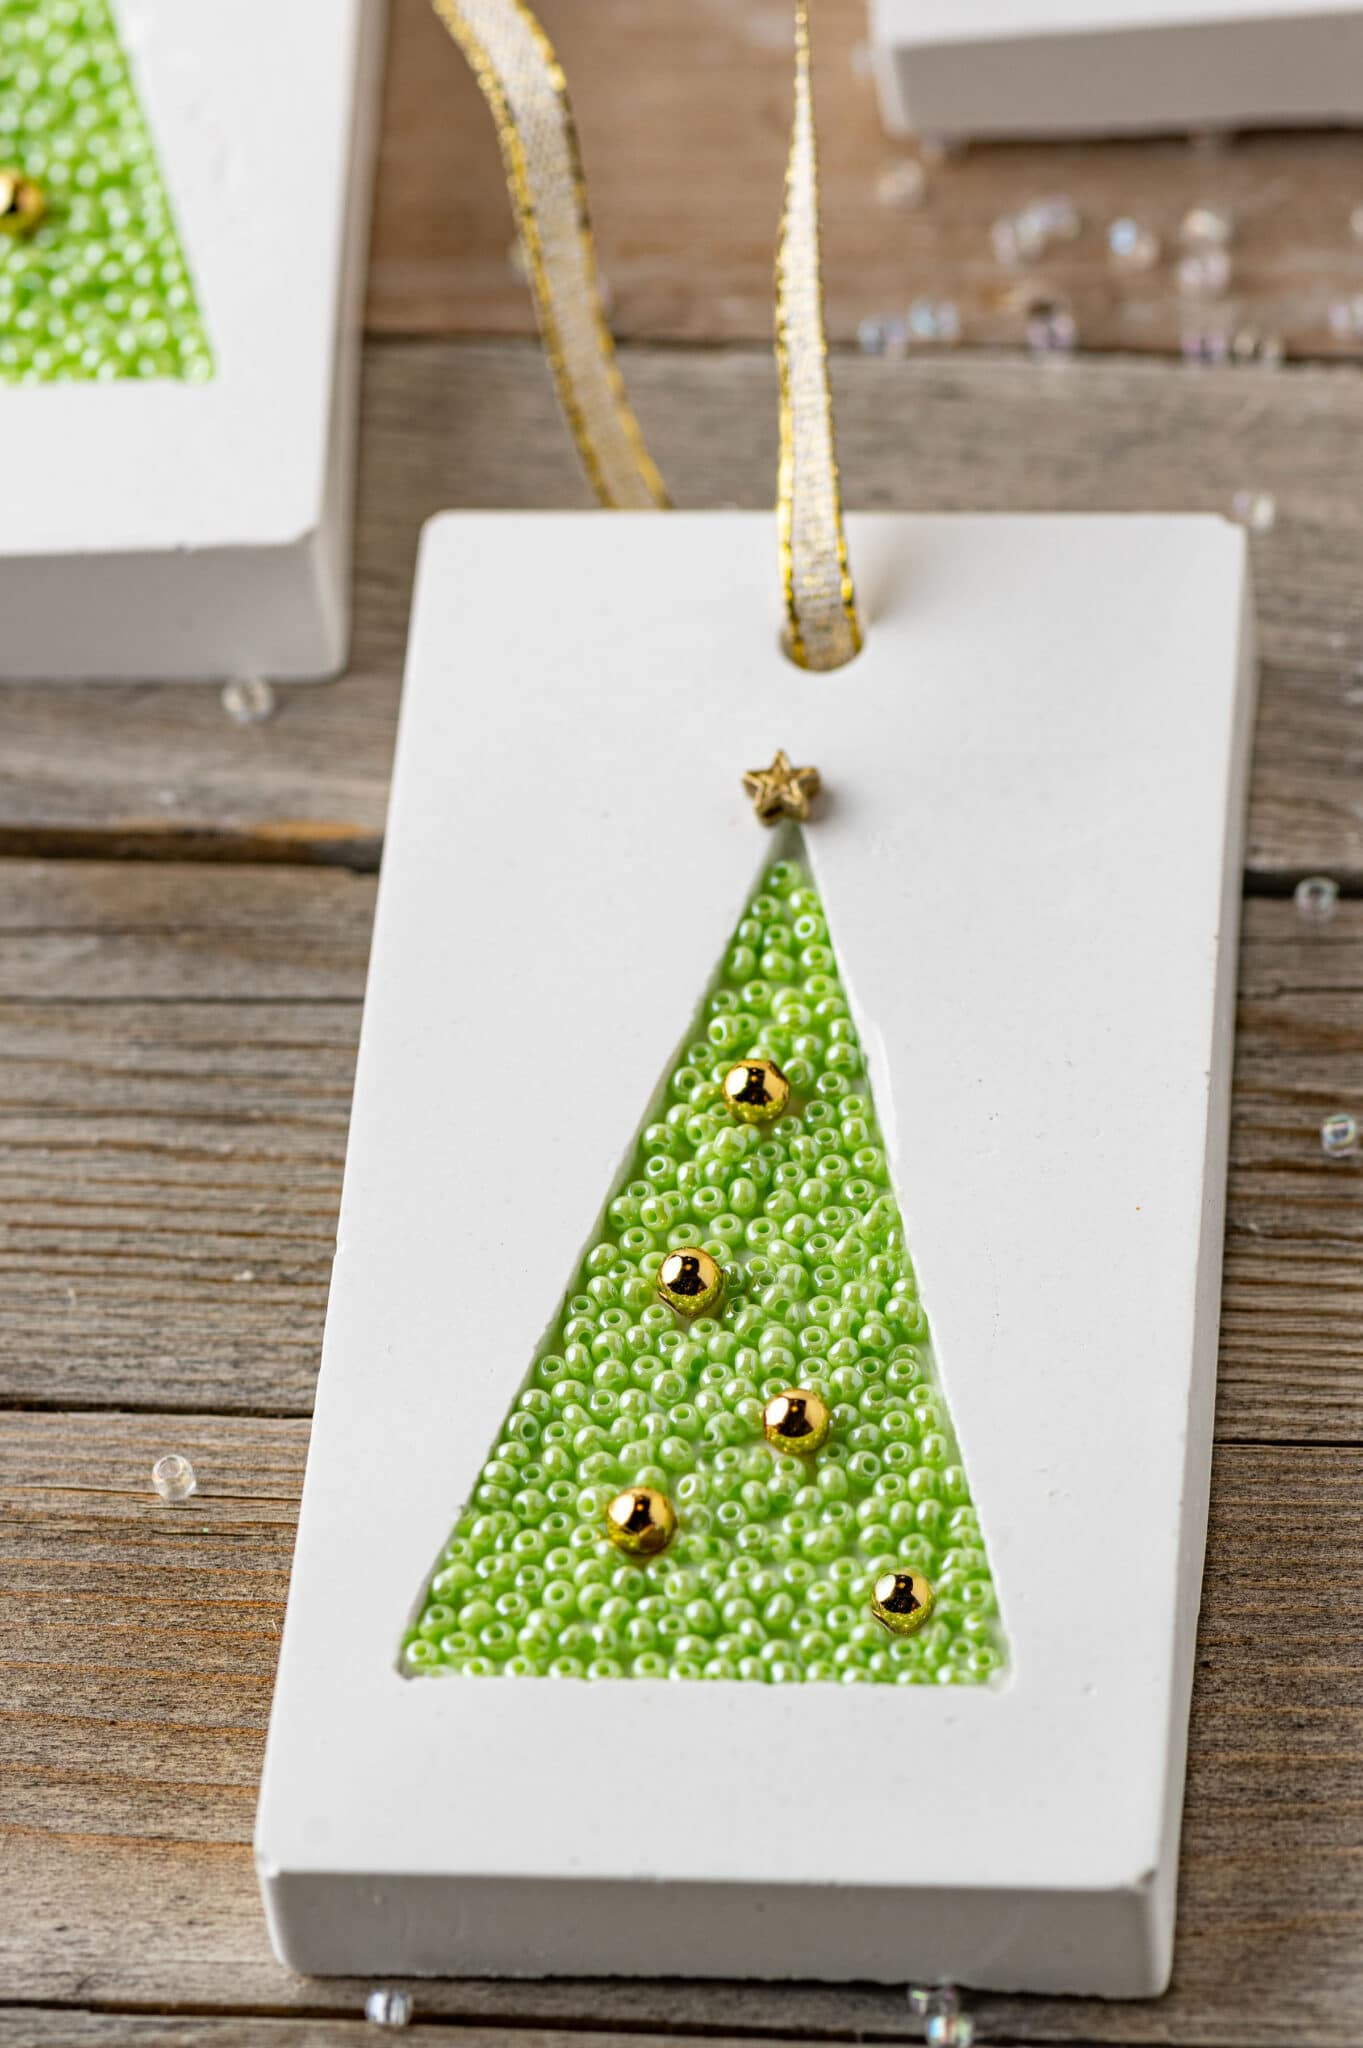 Handmade gift tag made from plaster and inlayed with small green beads.